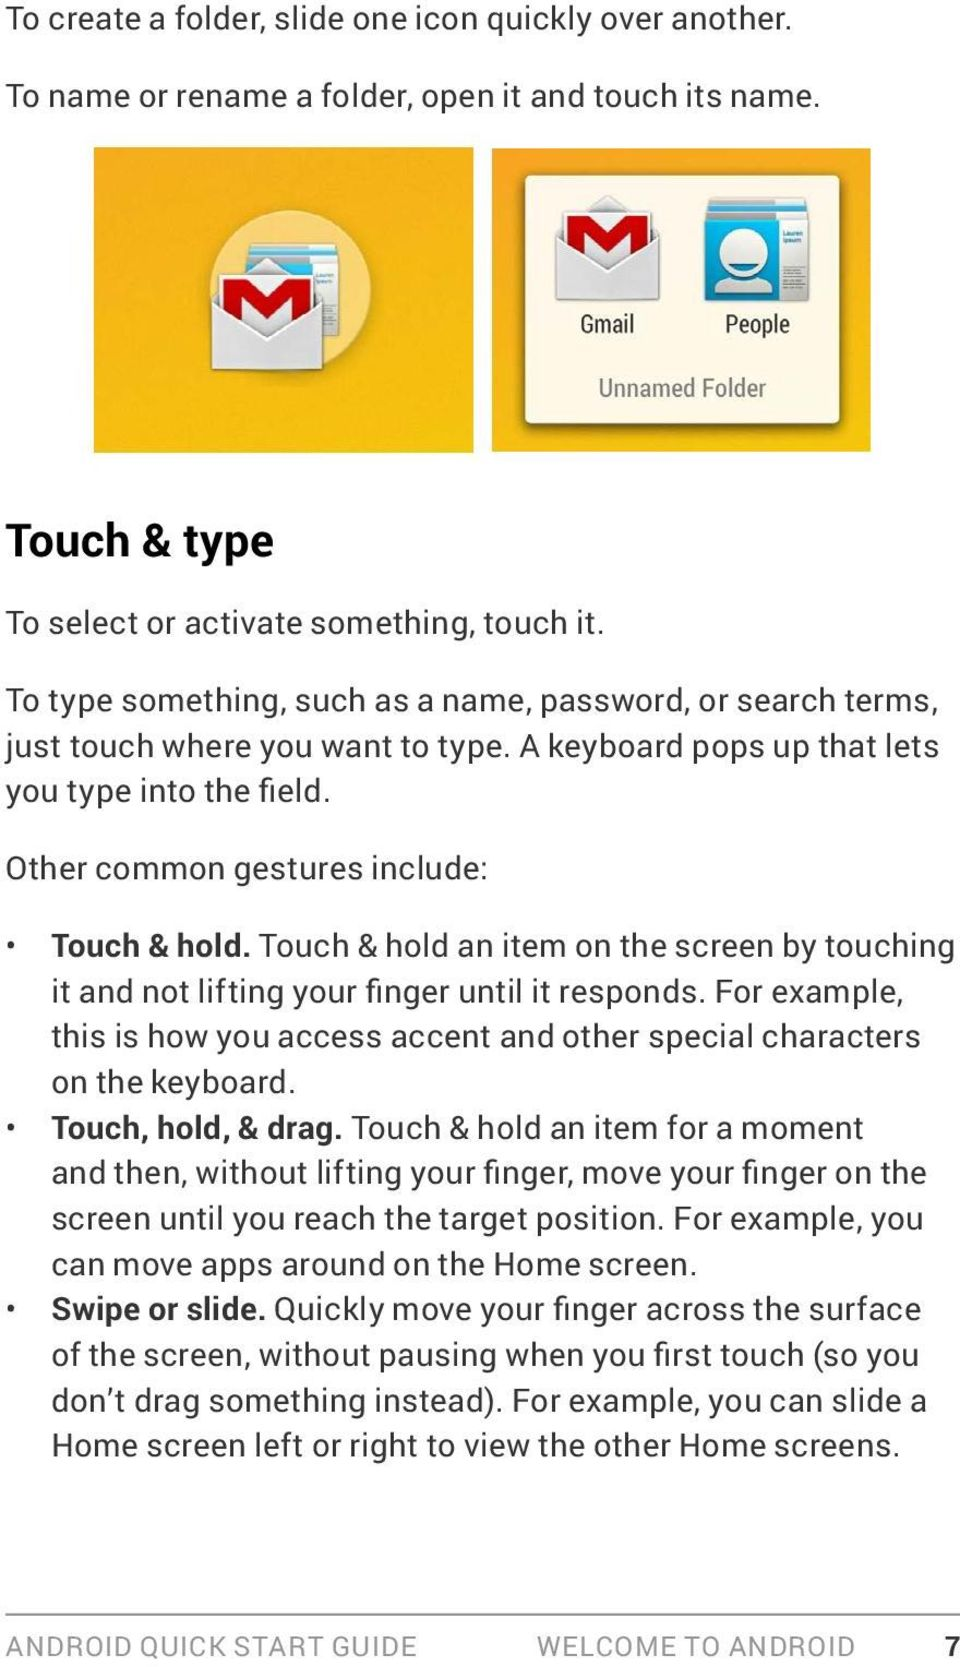 Touch & hold an item on the screen by touching it and not lifting your finger until it responds. For example, this is how you access accent and other special characters on the keyboard.